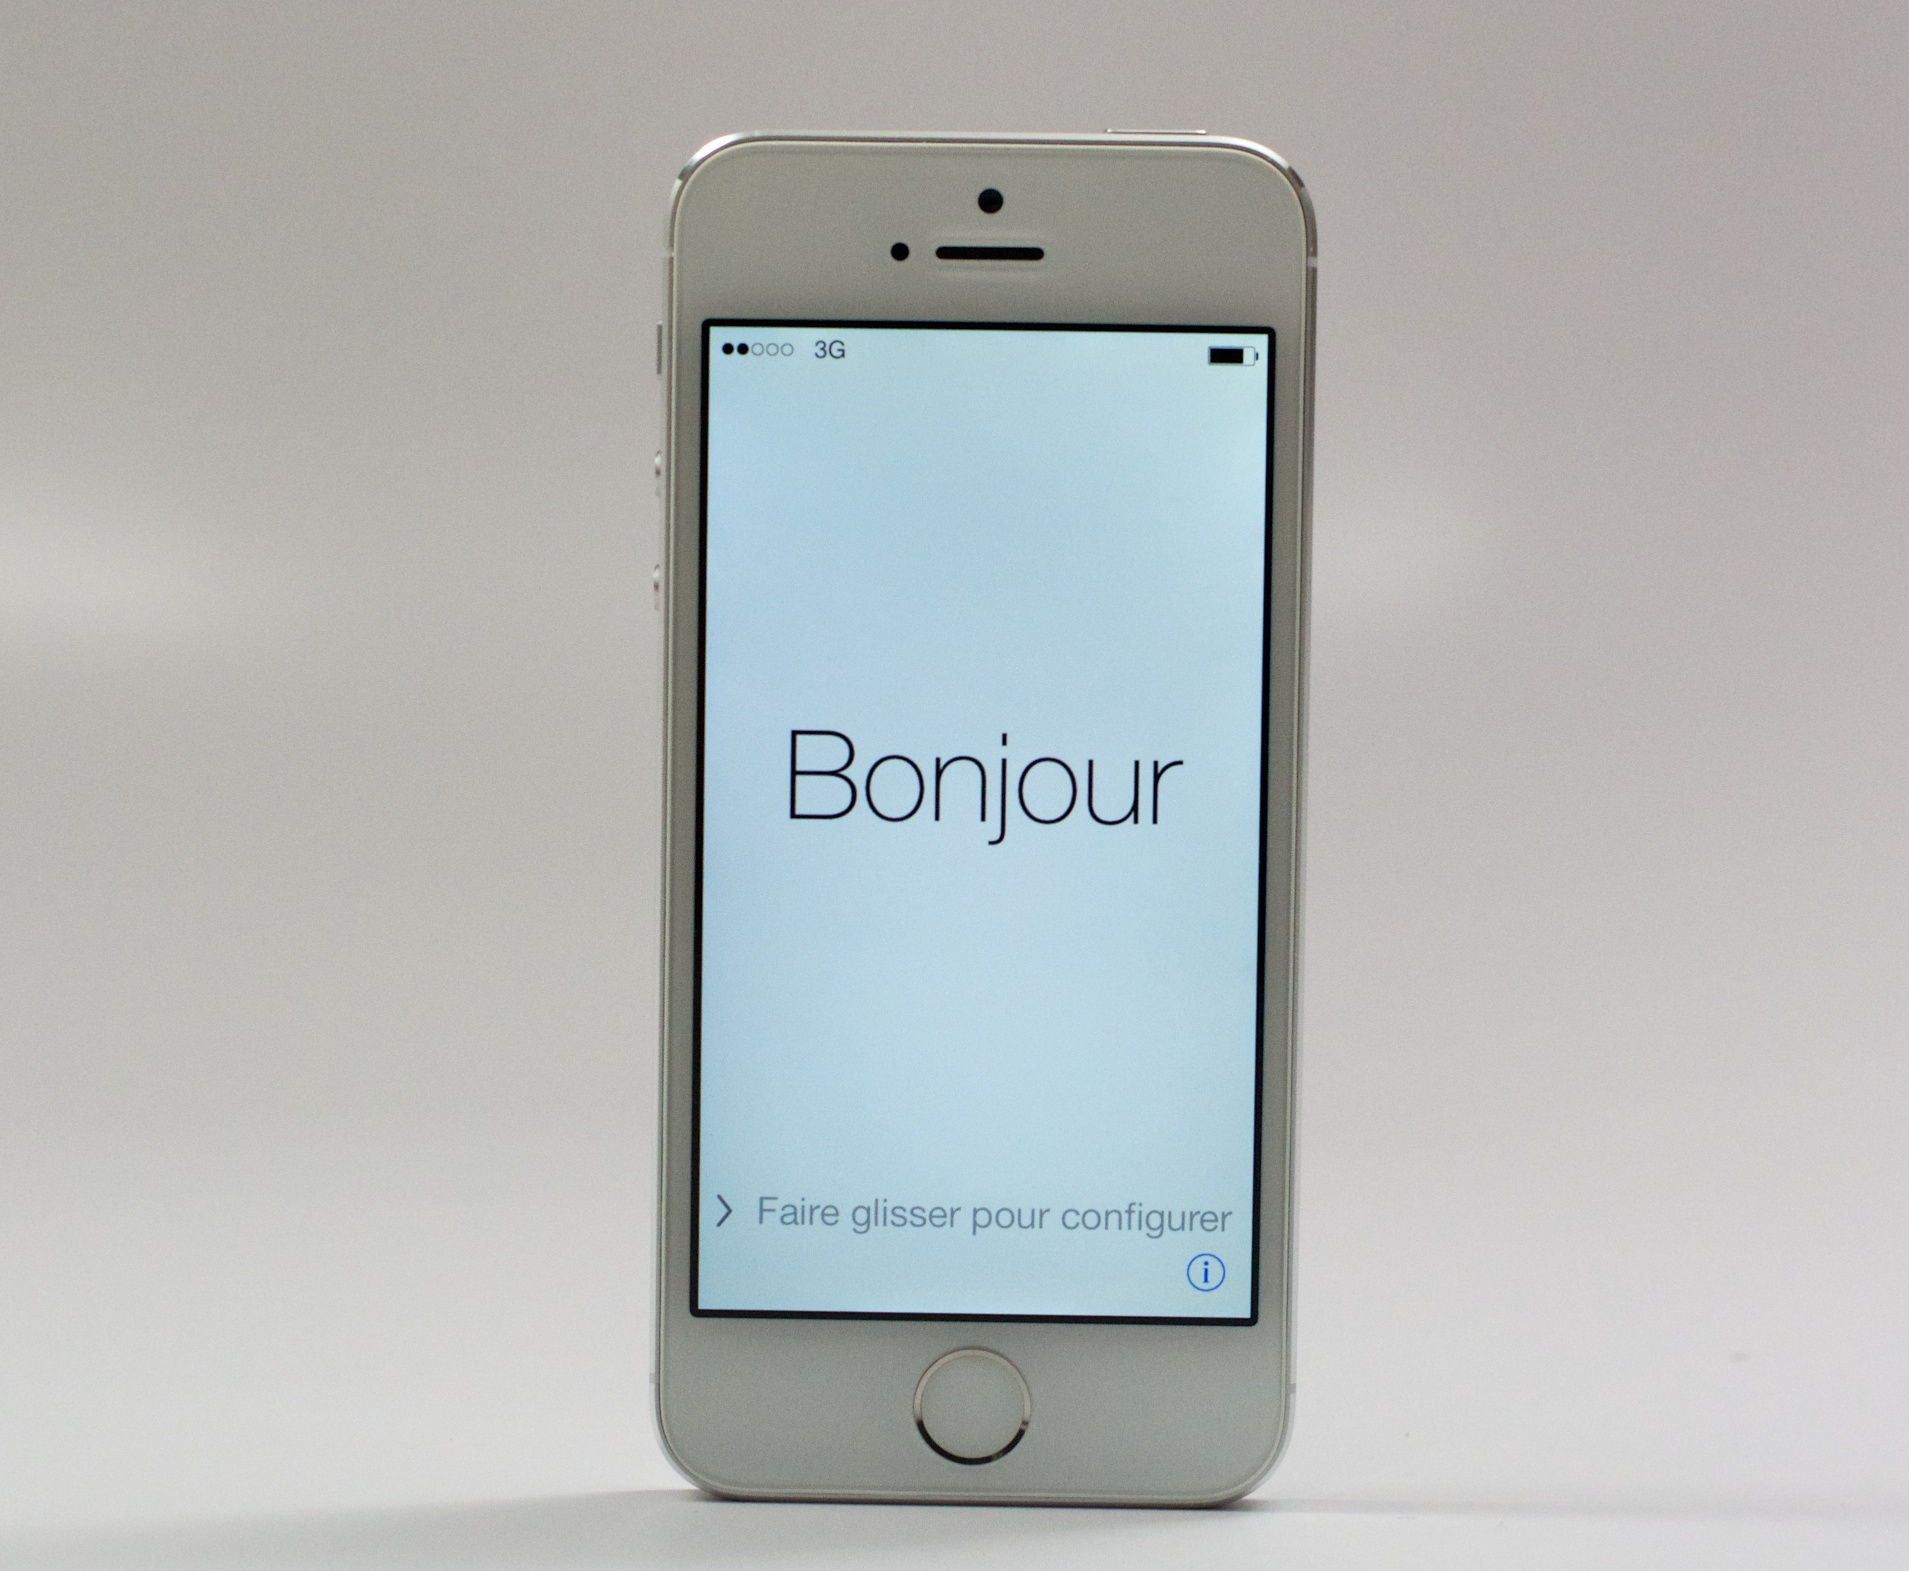 iOS 7.0.3 Update Release Tipped as Imminent